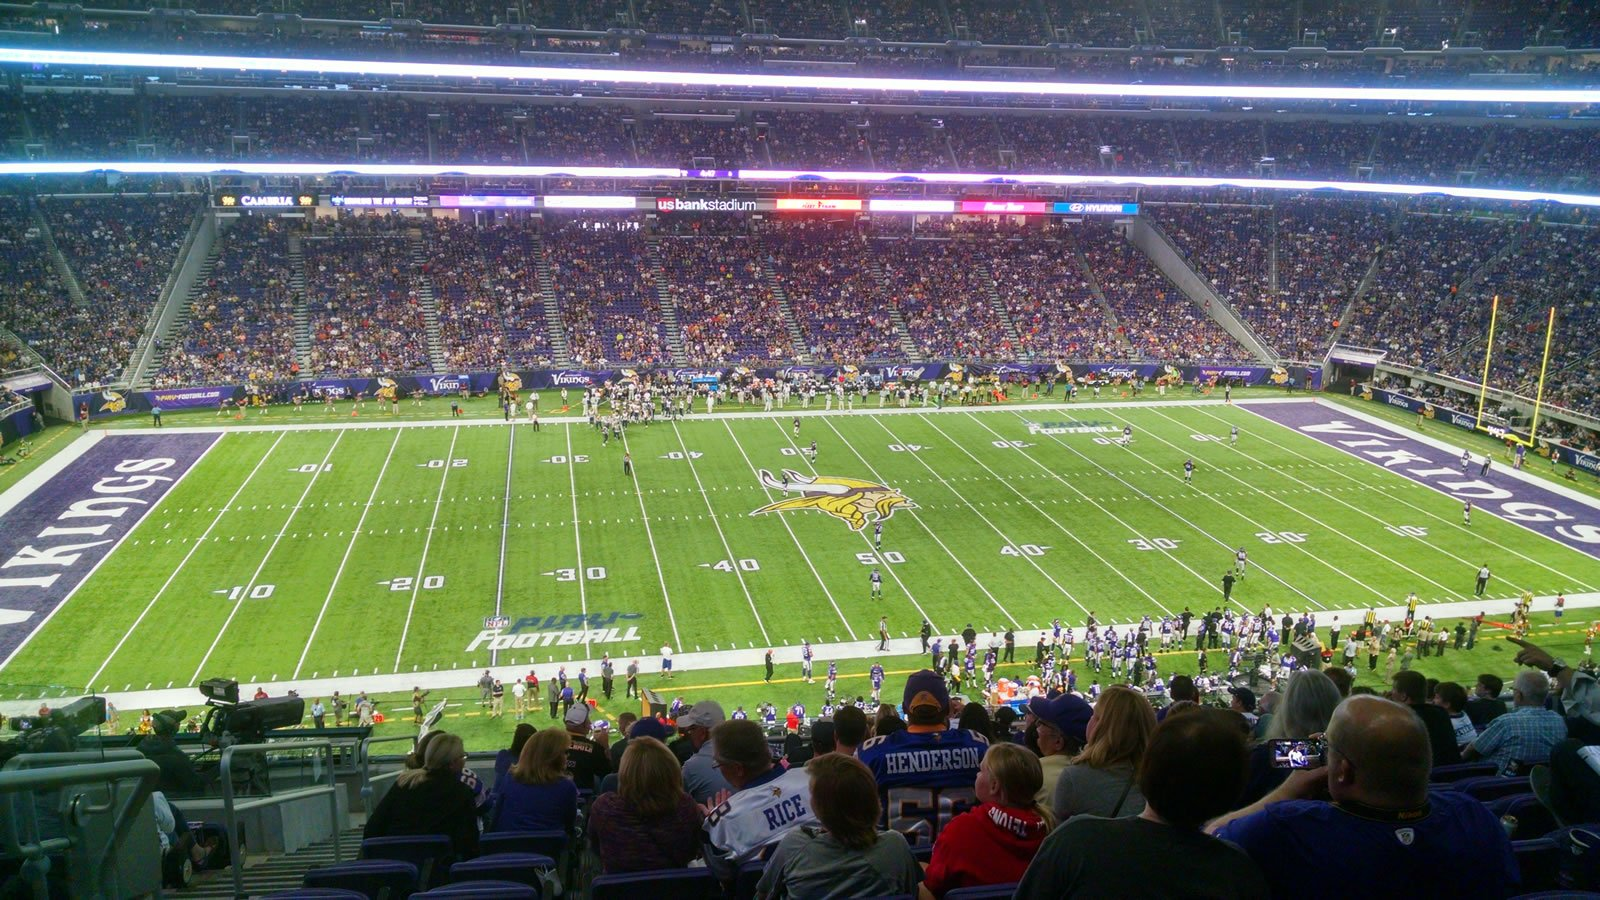 Seat View for U.S. Bank Stadium Fire Club 9, Row 13, Seat 23